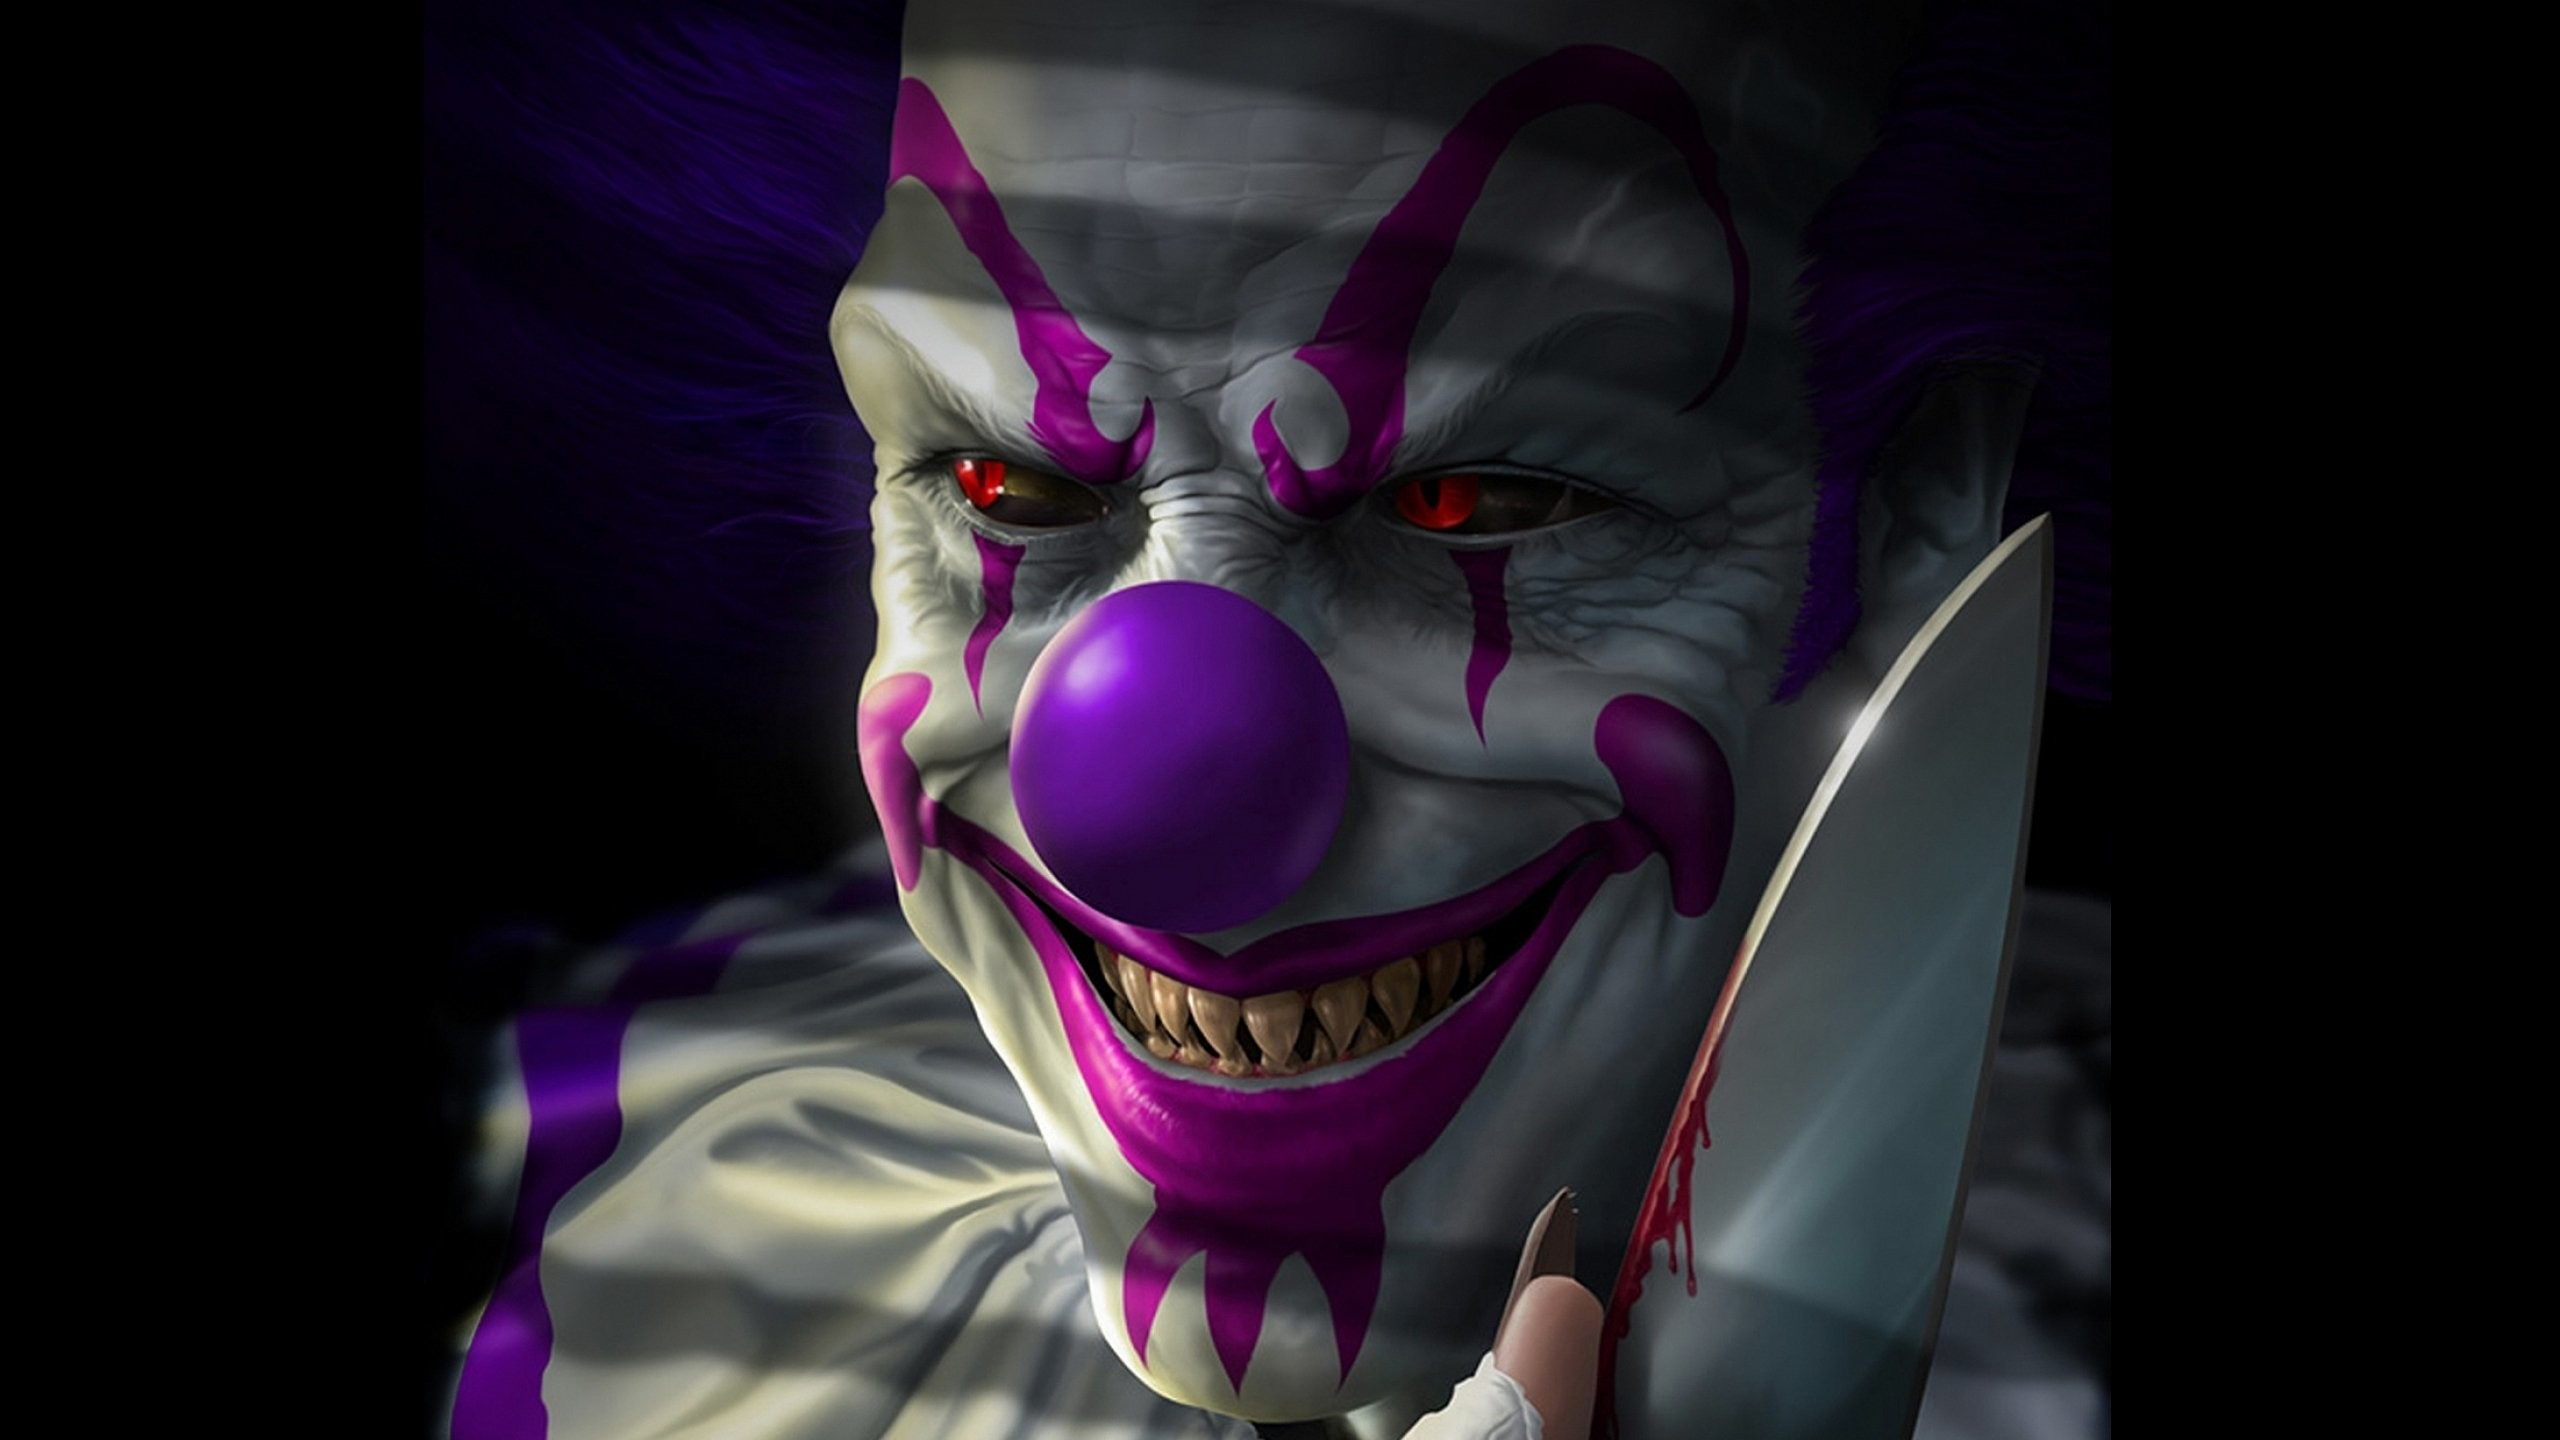 Res: 2560x1440, Scary Clown Wallpaper Free